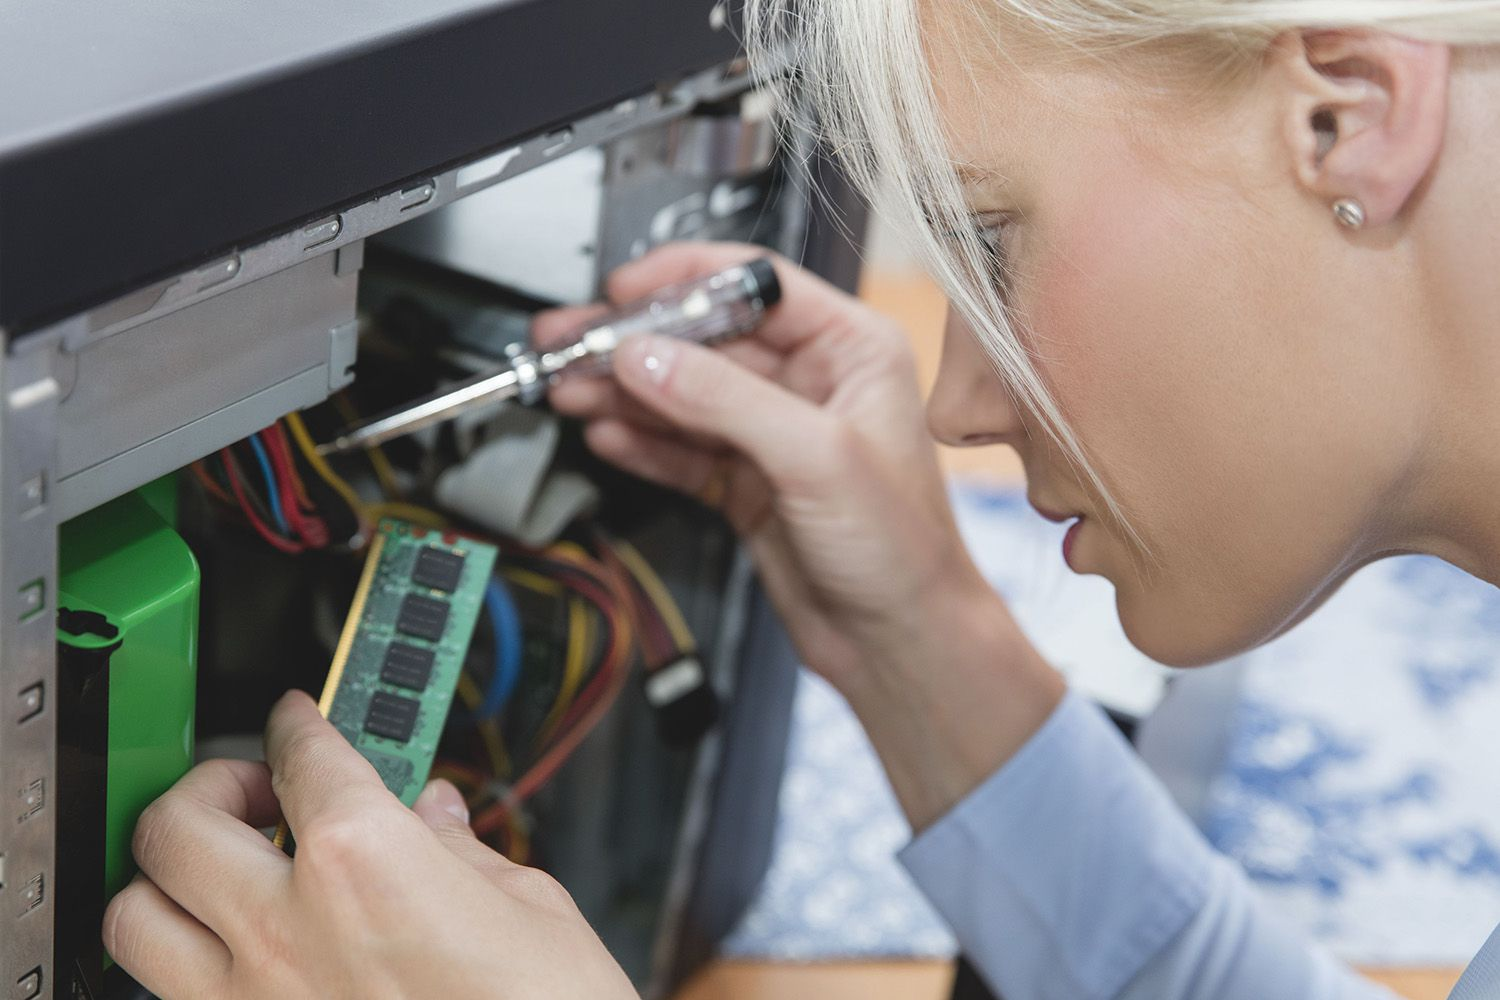 Technology consultant assembling RAM in computer as a freelance on-demand provider..